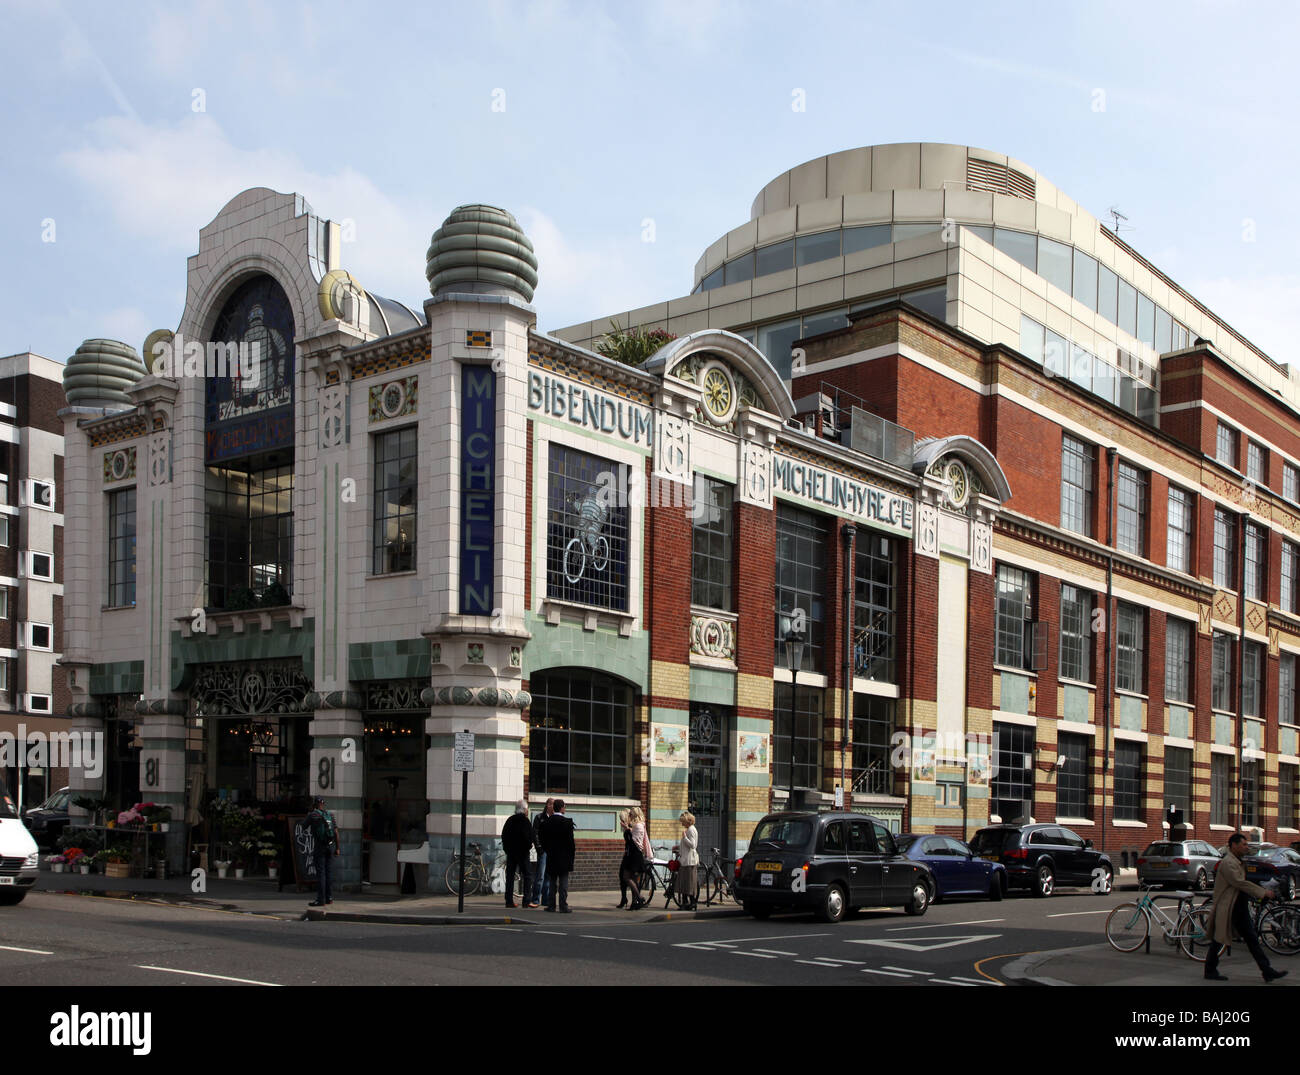 Michelin House Royal Borough of Kensington Chelsea London UK - Stock Image